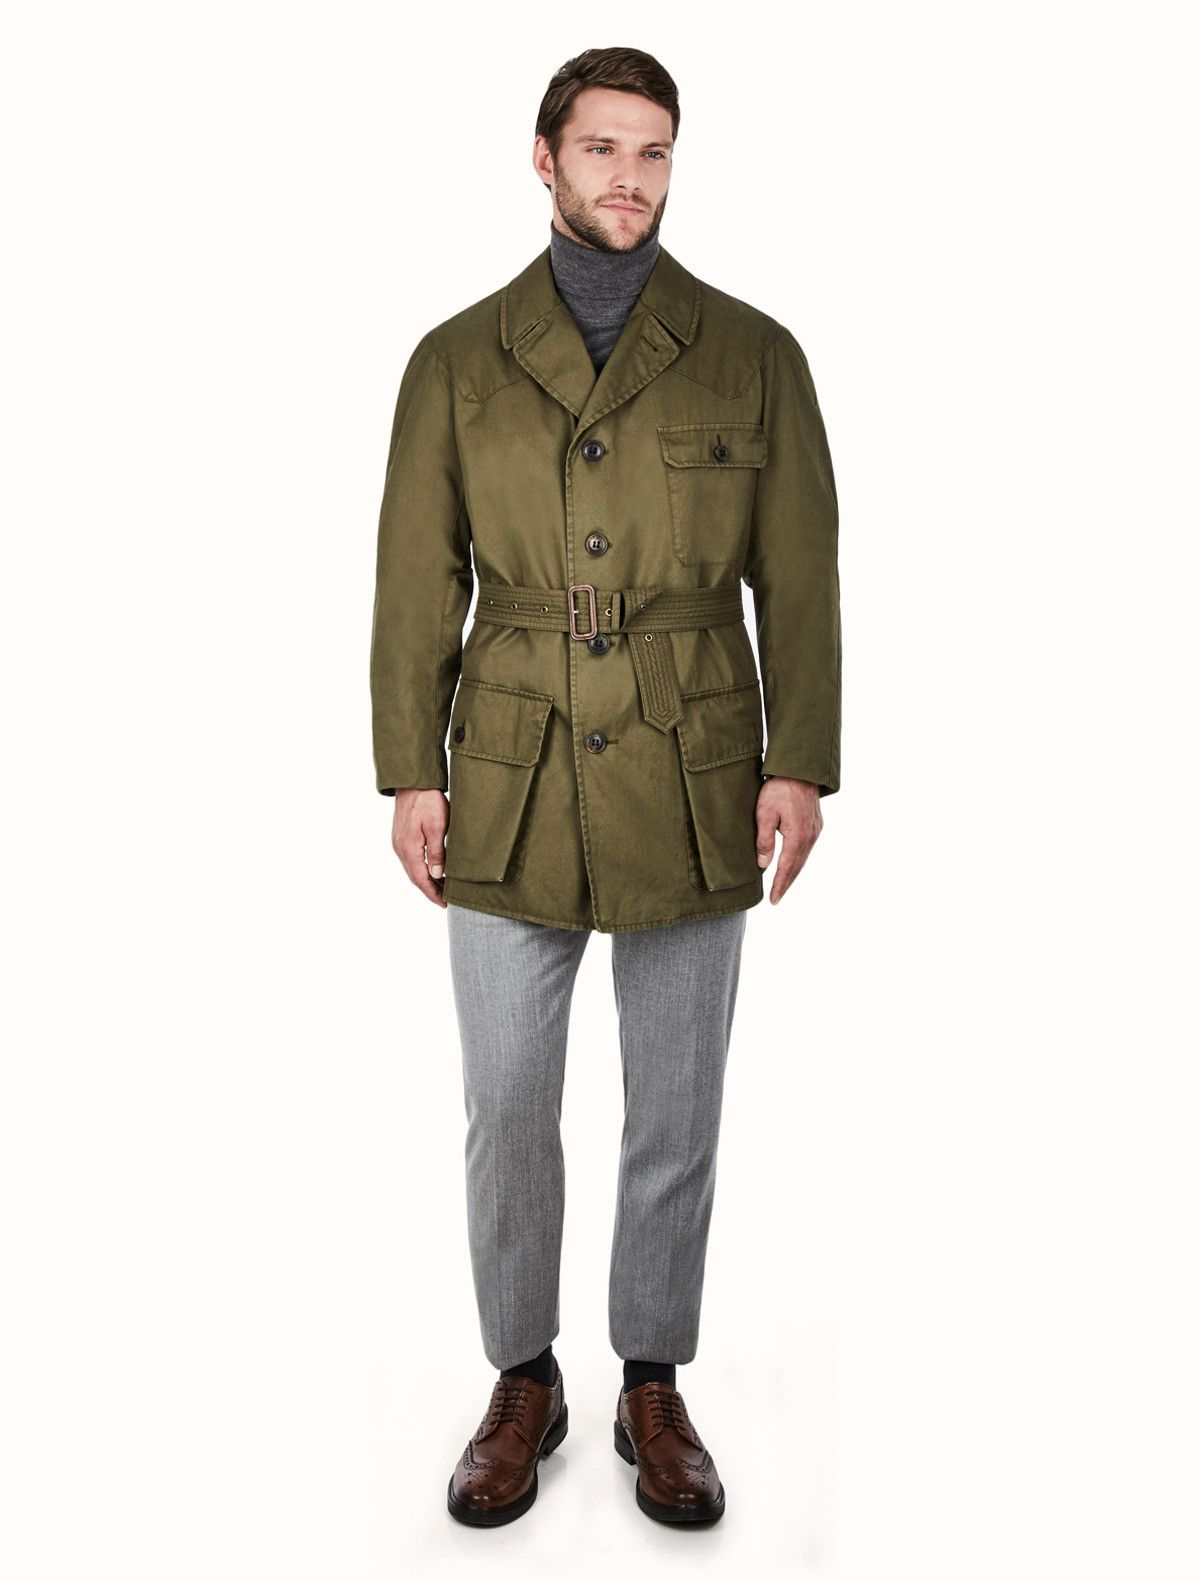 594598edfbf9e Shooter for Cordings Piccadilly Grenfell Cloth in Laundered Green in ...